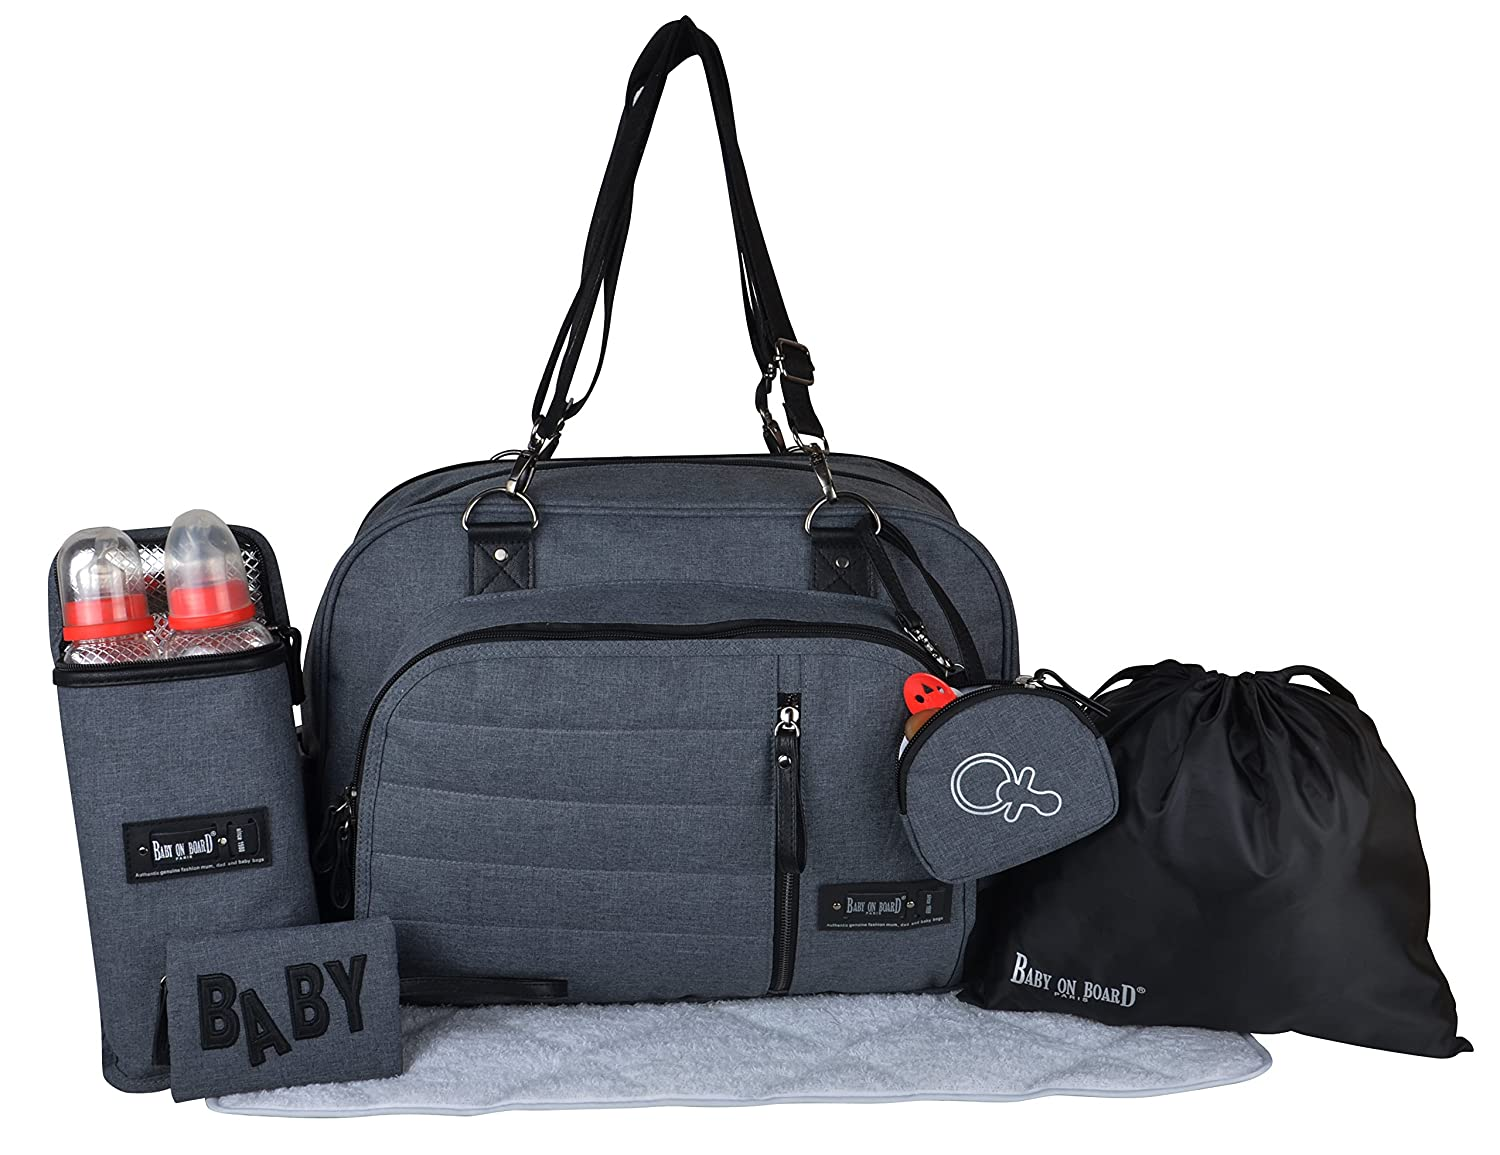 Baby on board 204300_017 Sac Daily Black WEAHG